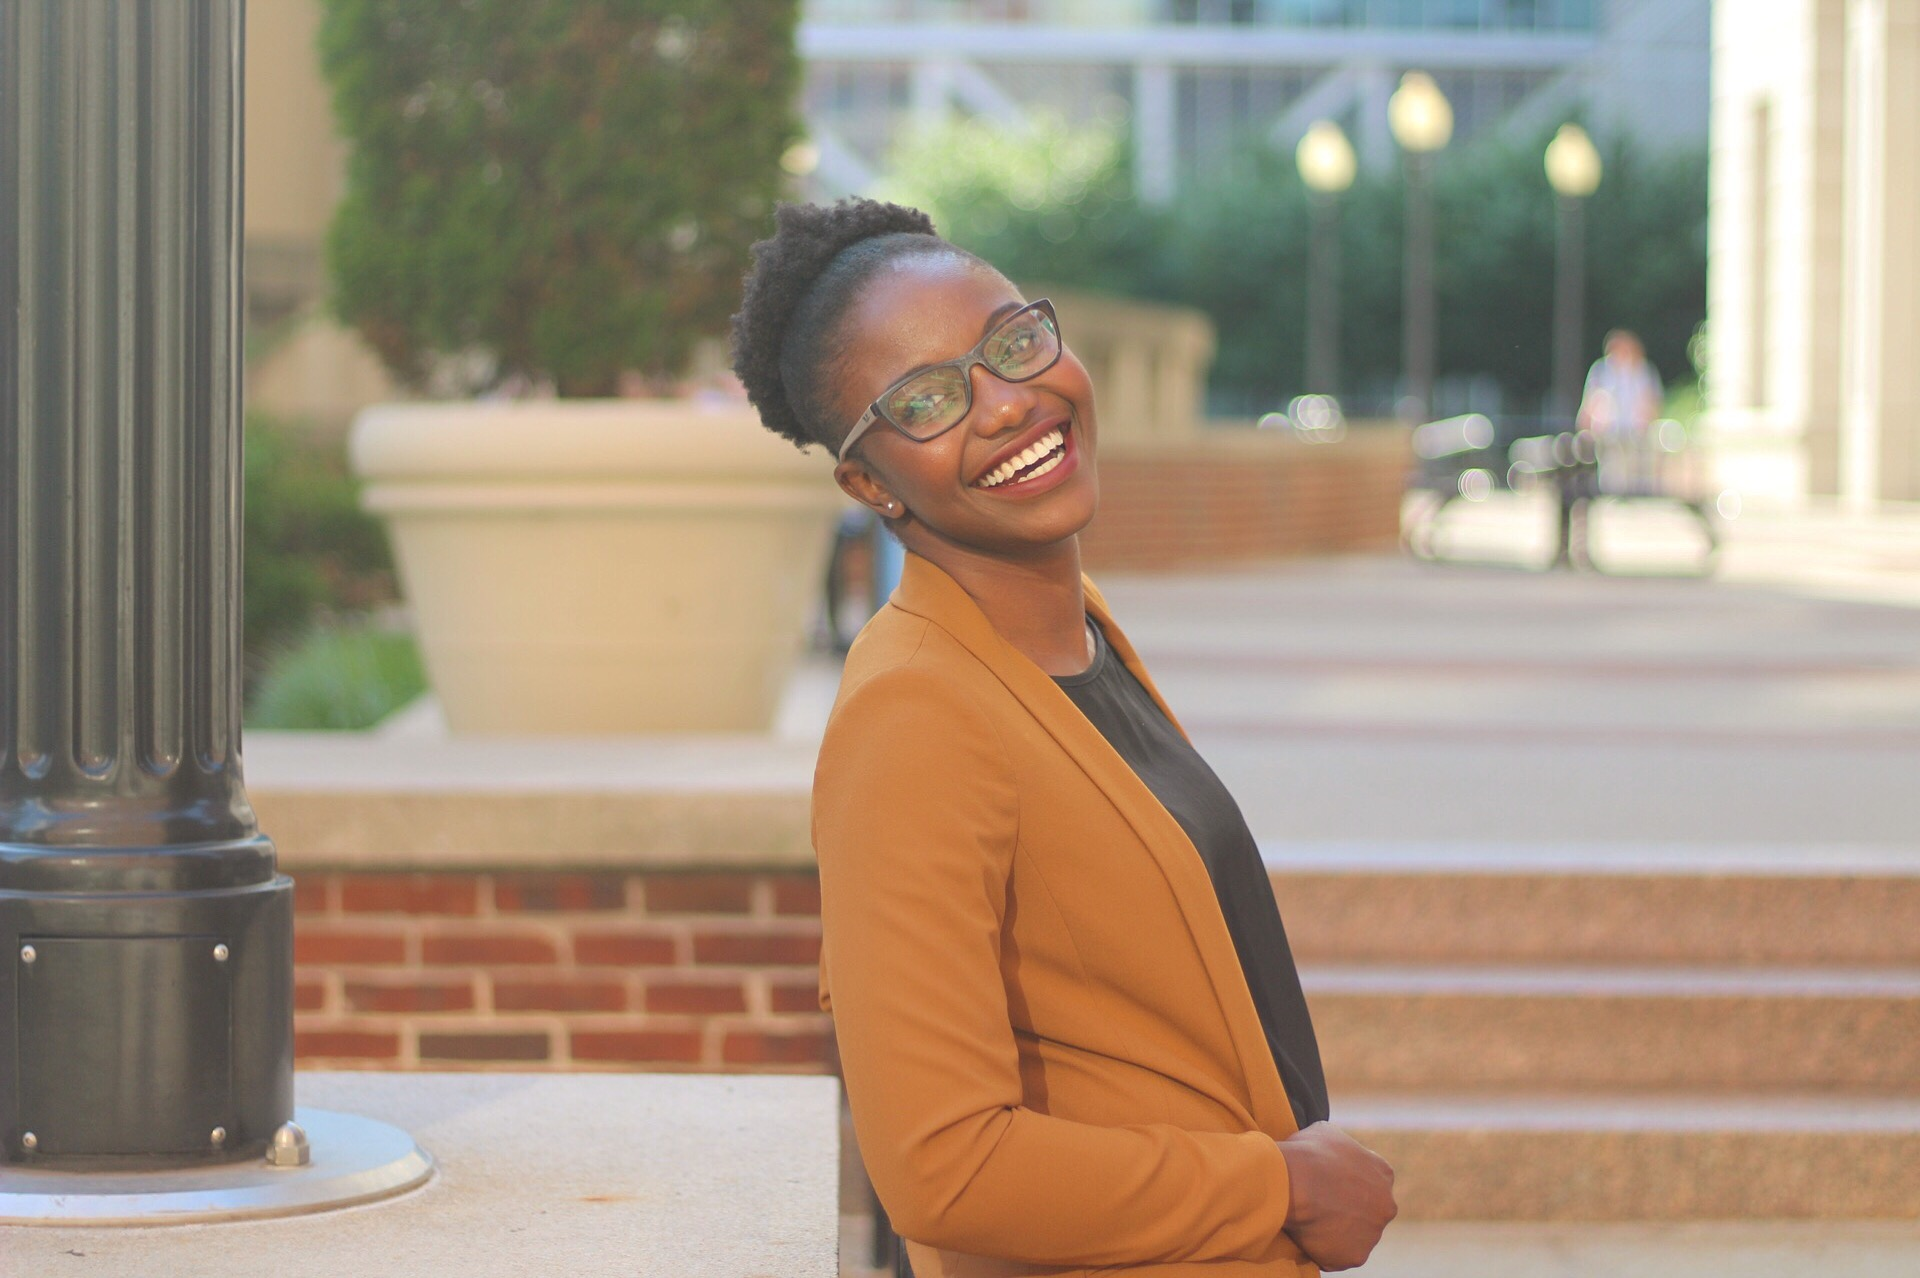 The Power of Belief - One Student's Transformational Journey From Haiti to San Francisco